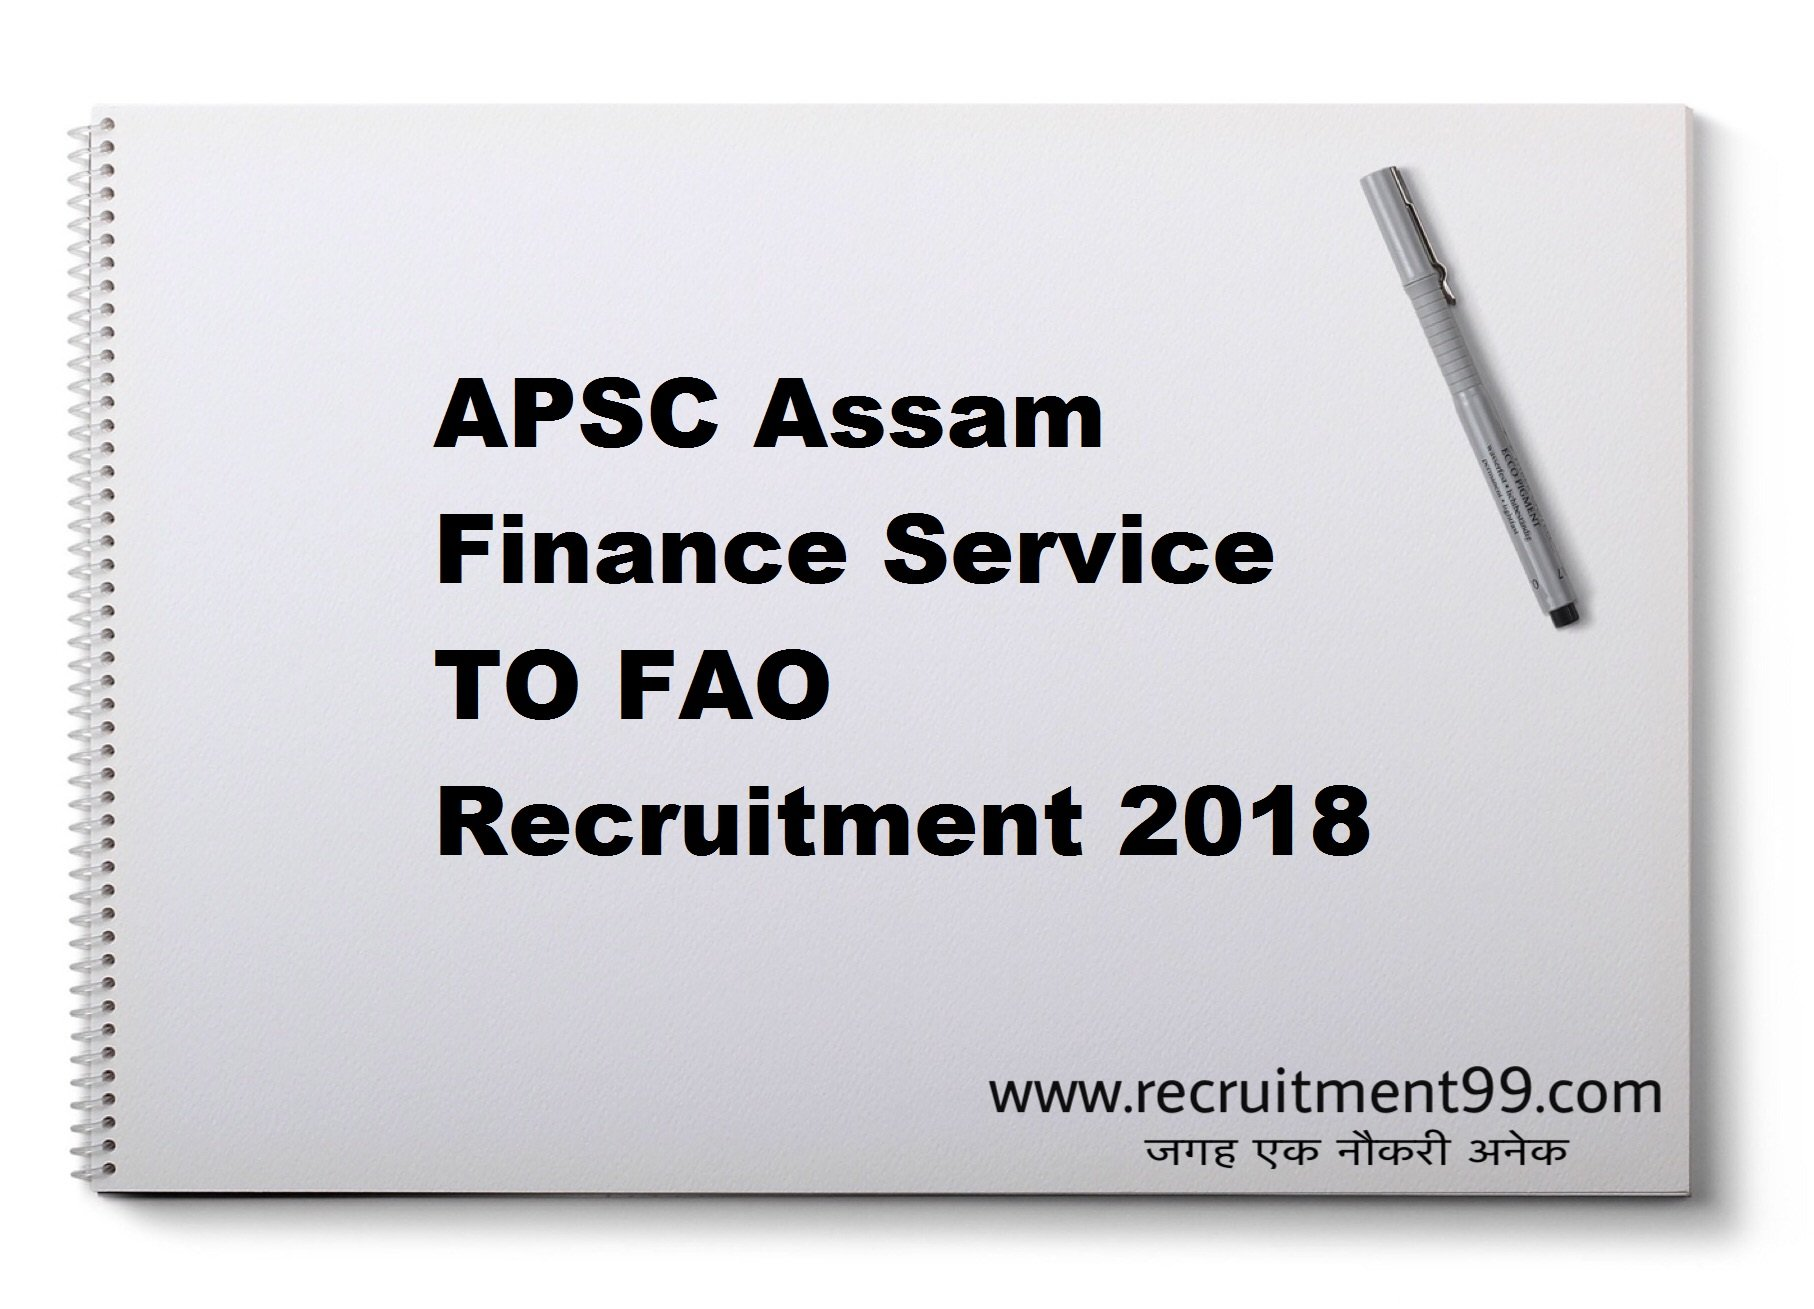 APSC Assam Finance Service TO FAO Recruitment Admit Card Result 2018